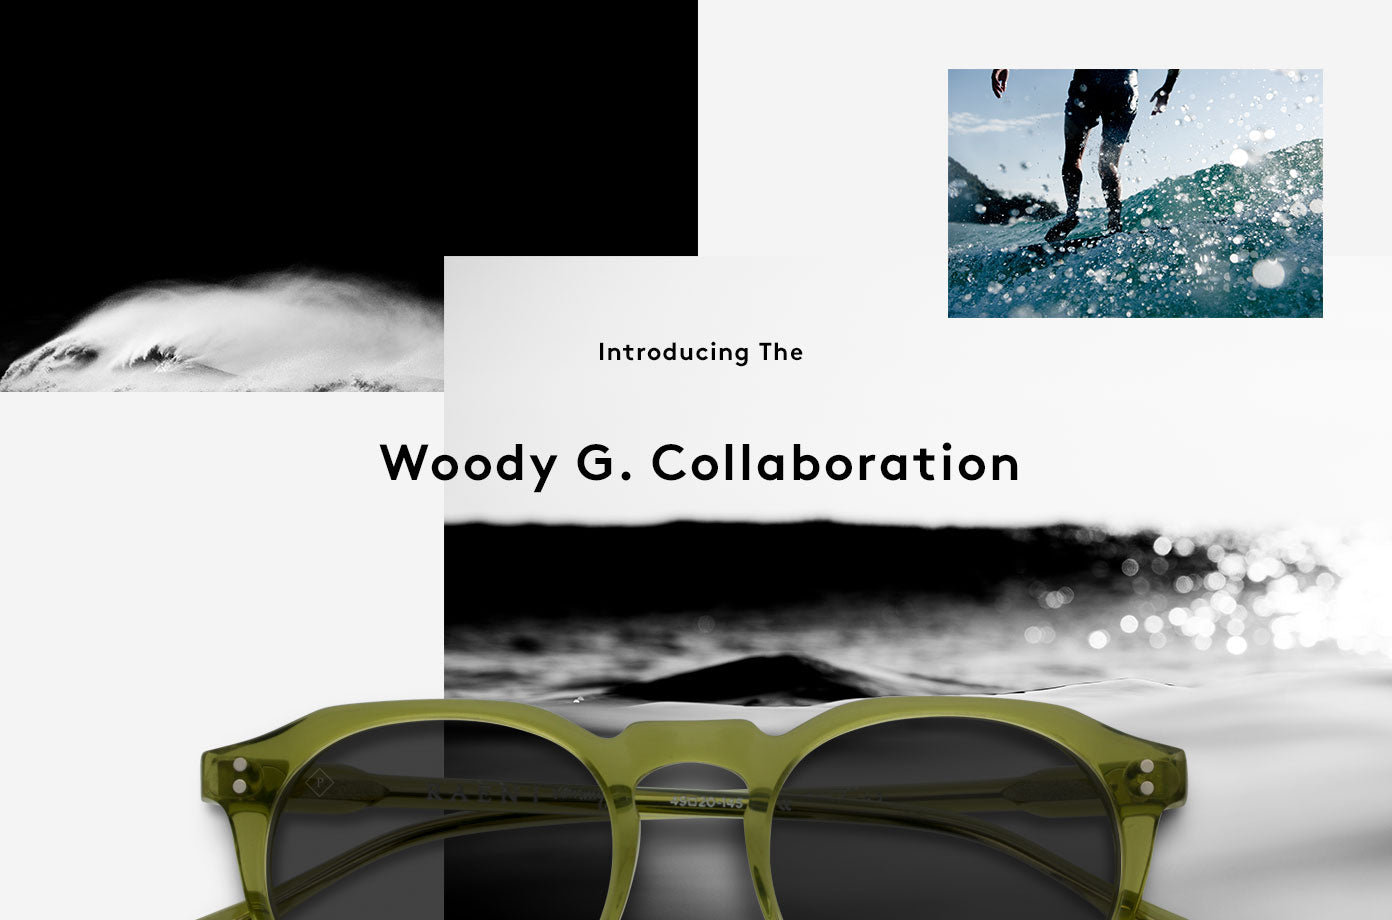 Introducing the Woody G. Collaboration